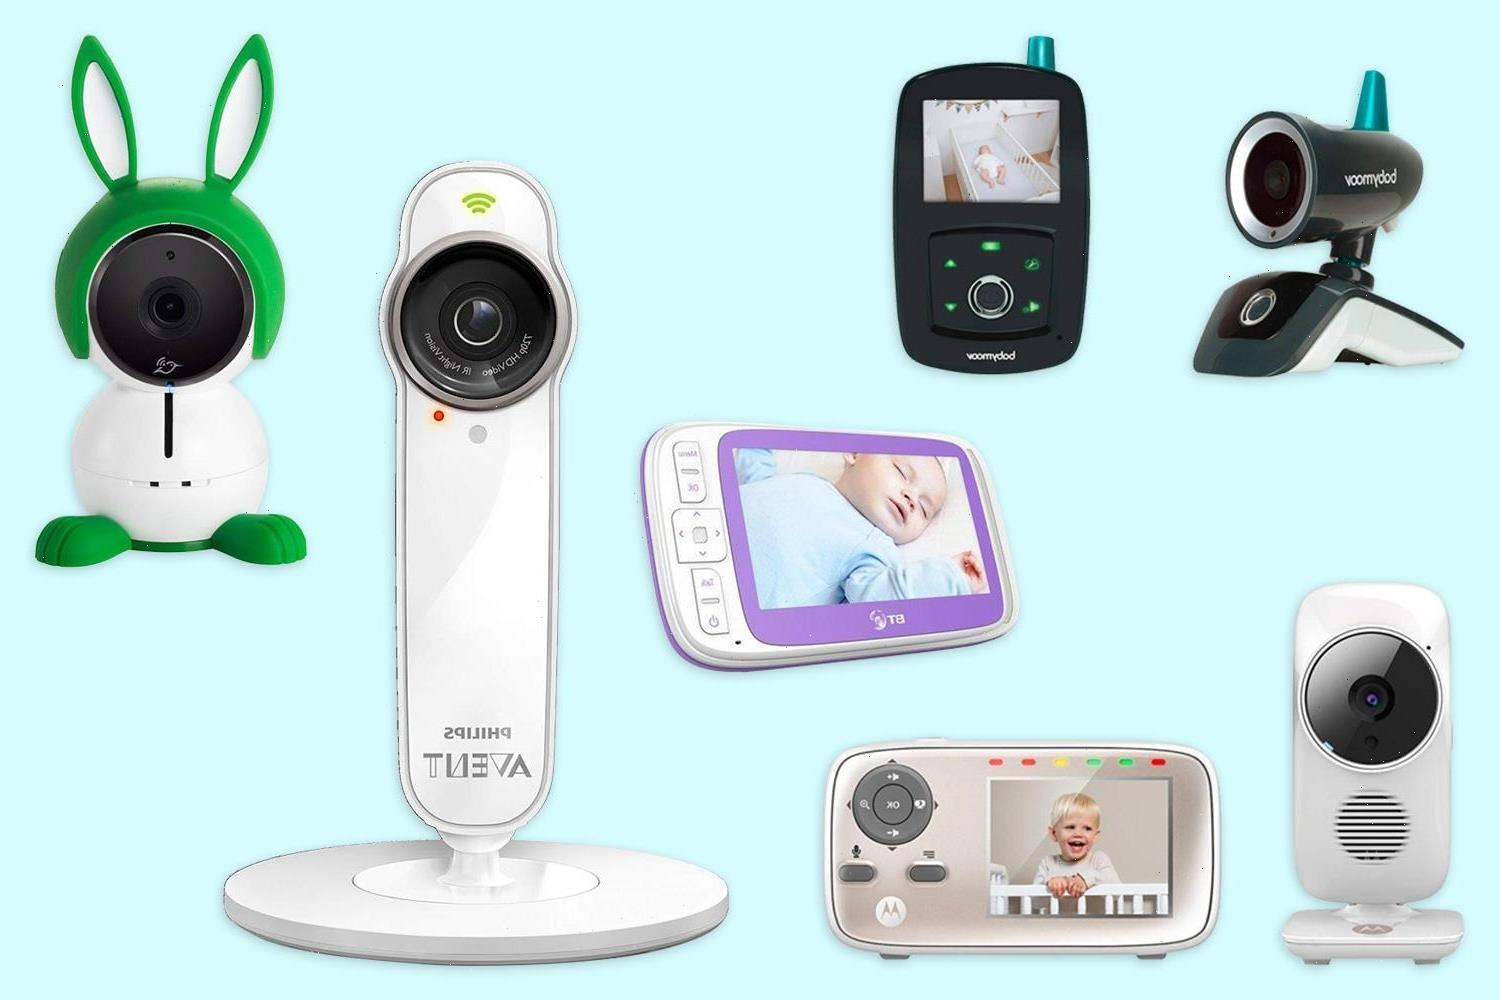 7 best baby video monitors 2021: Keep an eye on your baby from anywhere in the house